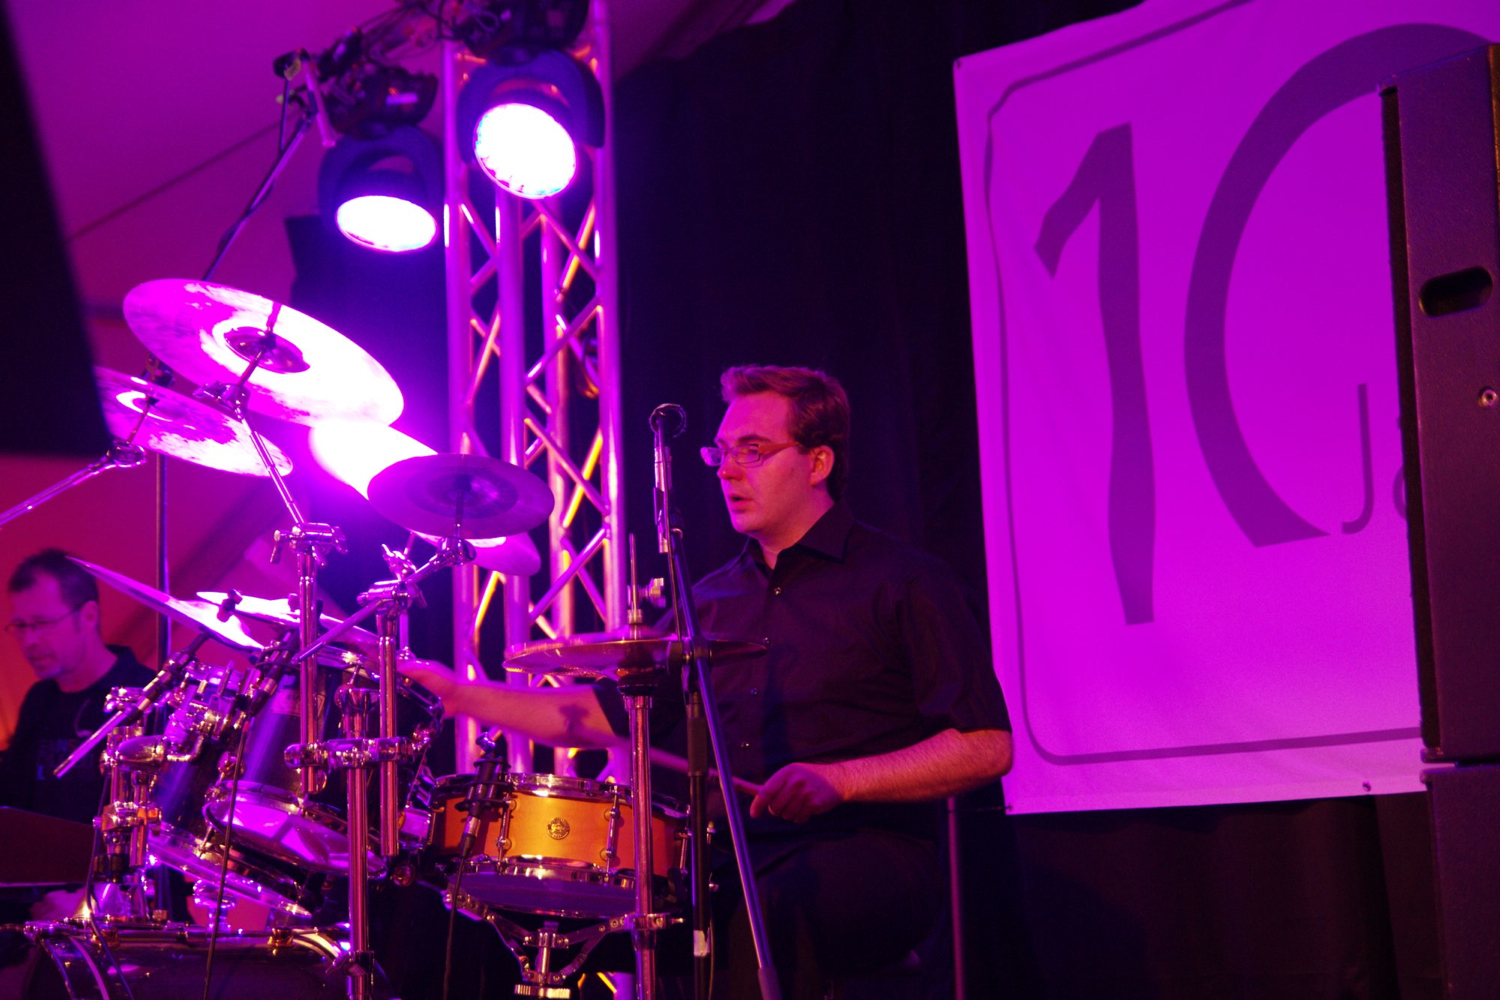 Die AlleyCats - Michael Roth an den Drums